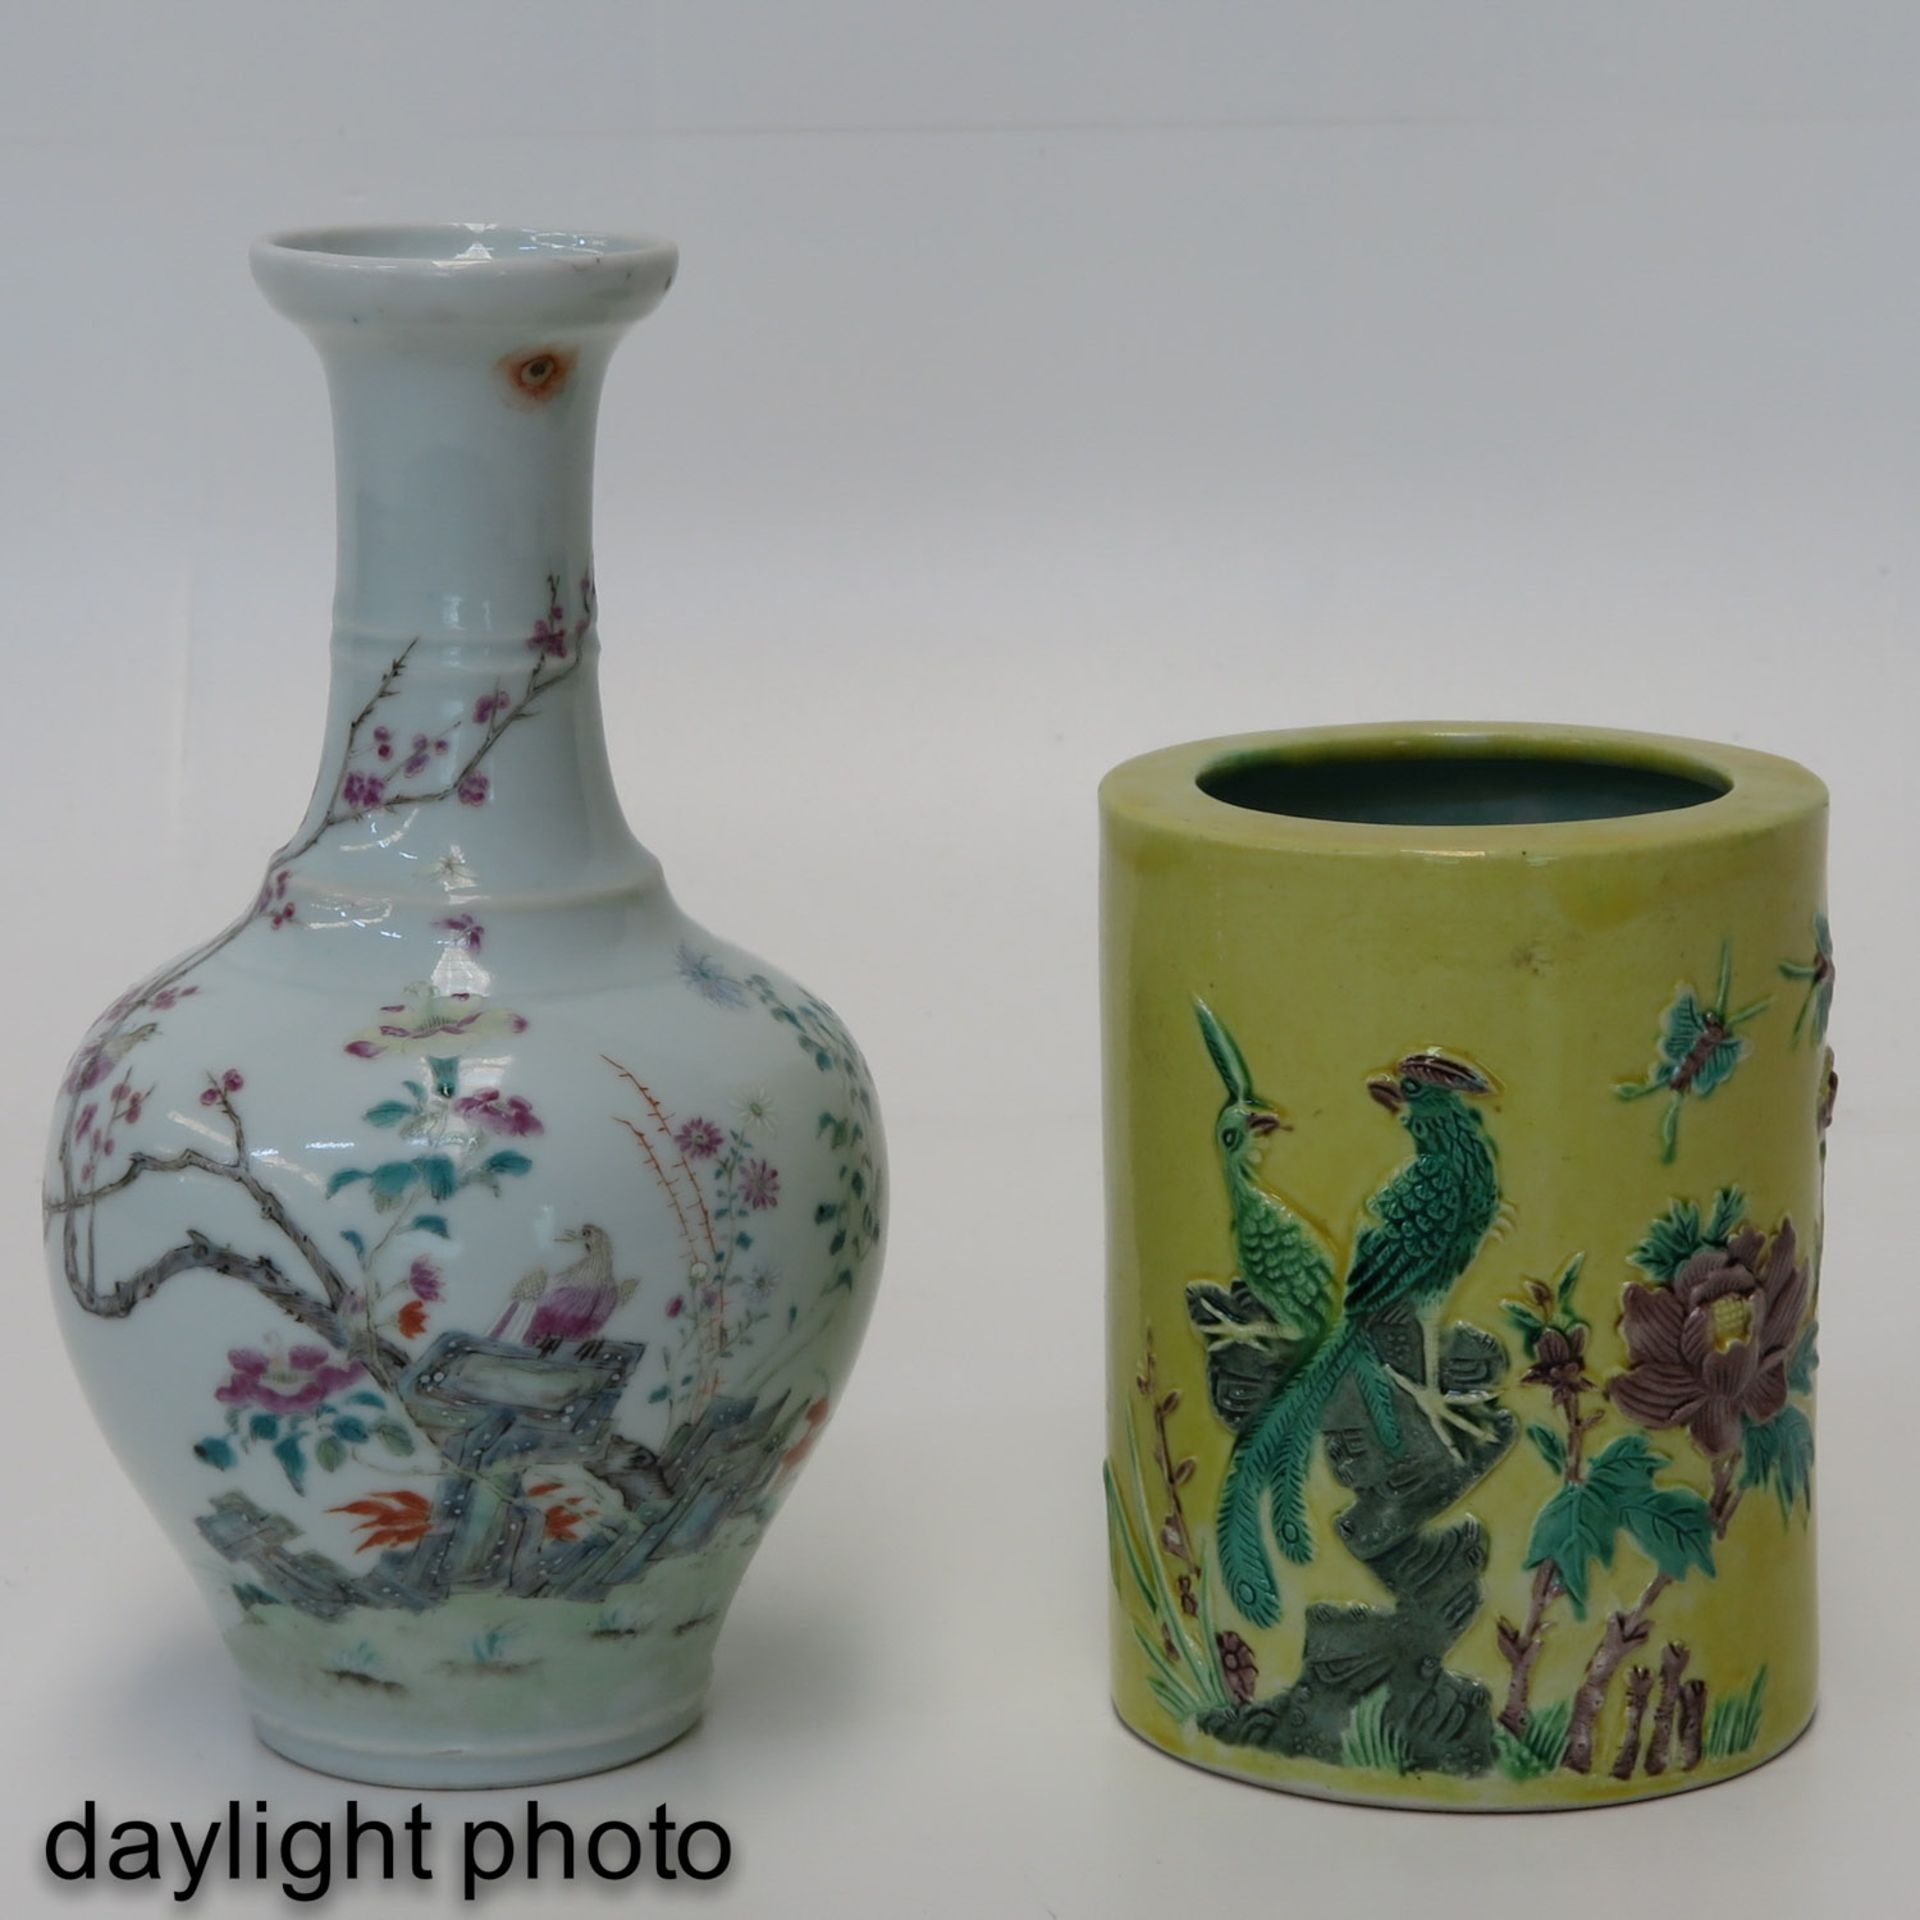 Los 7005 - A Famille Rose Vase and Brush Pot